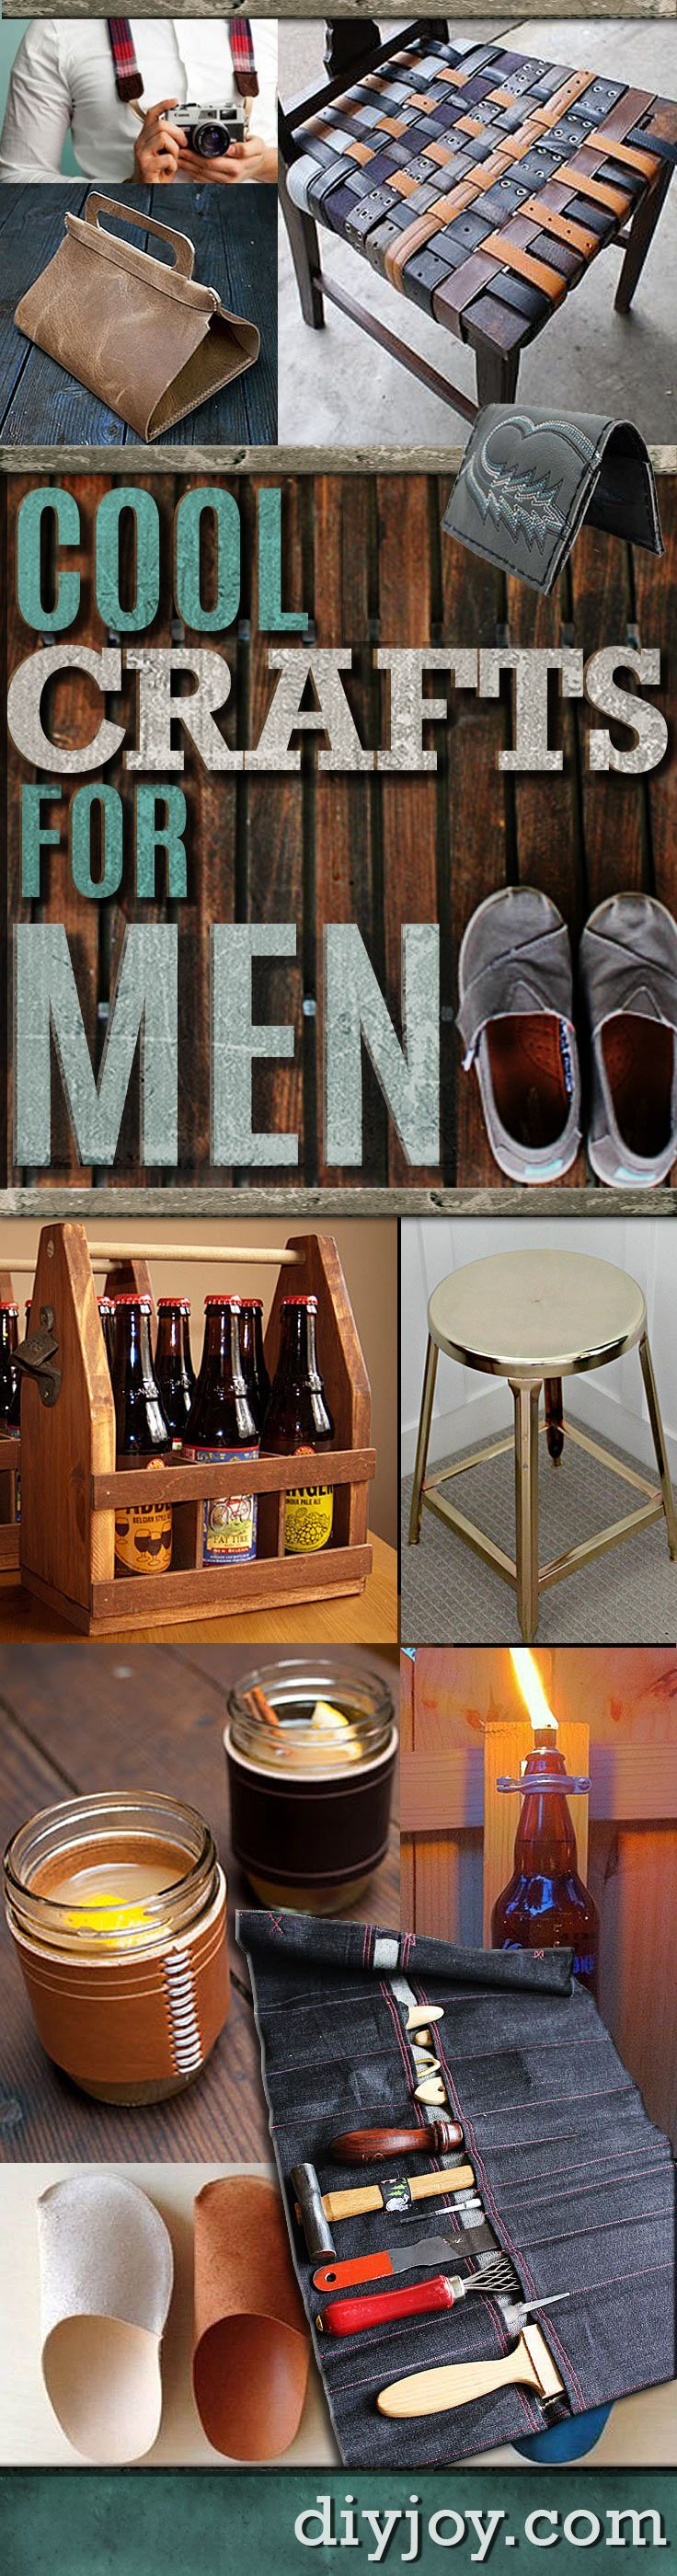 Awesome Crafts for Men and Manly DIY Project Ideas Guys Love - Fun Man Cave Ideas, Homemade Gifts, Manly Decor, Games and Gear. Tutorials for Creative Projects to Make This Weekend | Super DIY Gift Ideas for the Boyfriend, Husband, Brother and Father - Da